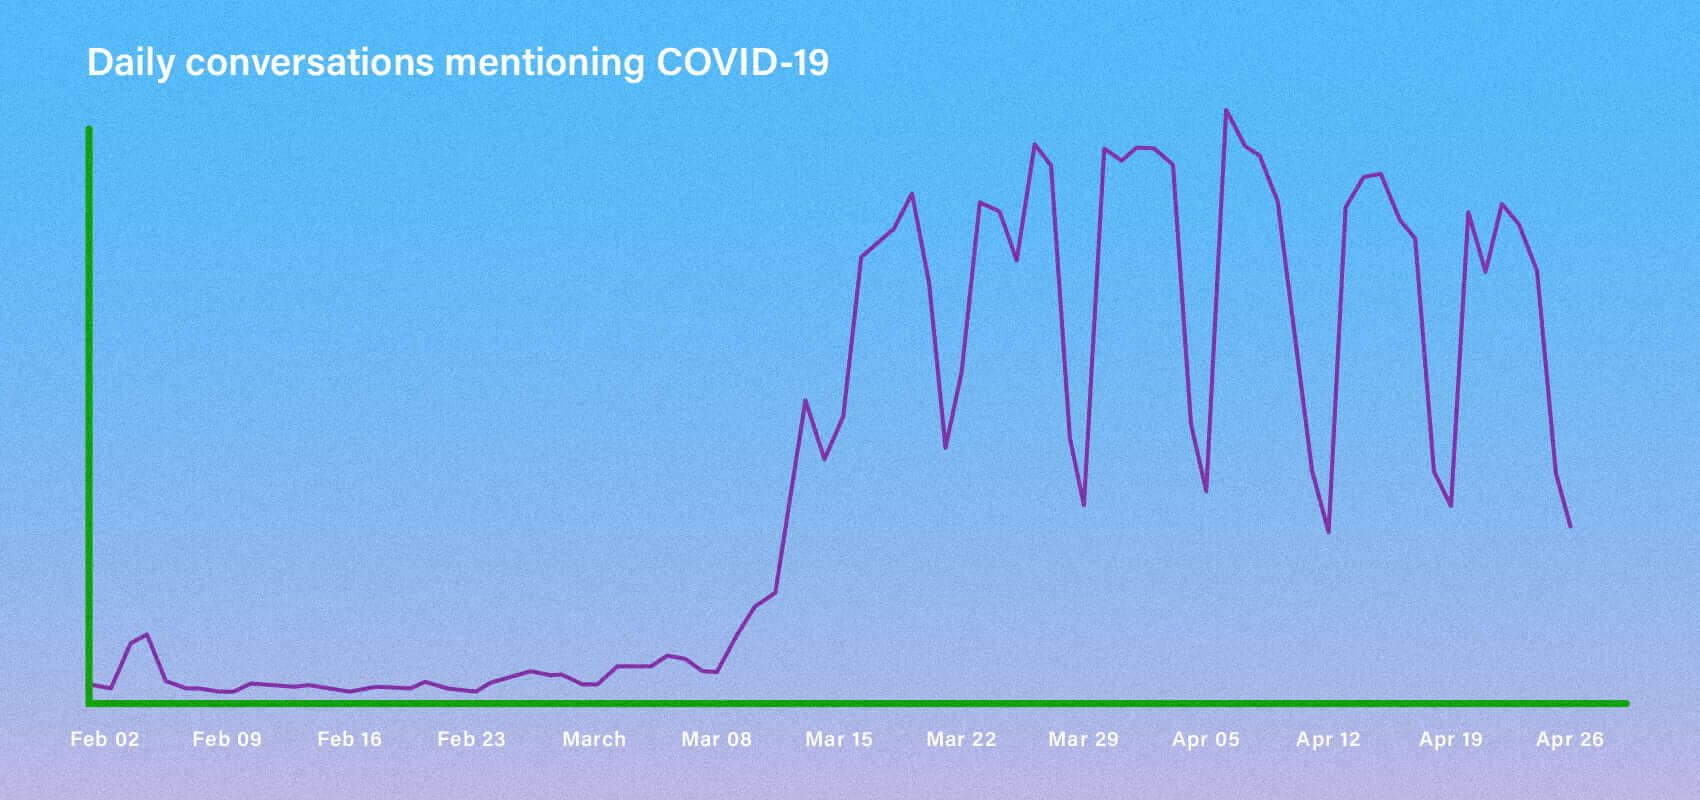 Daily conversations mentioning COVID-19